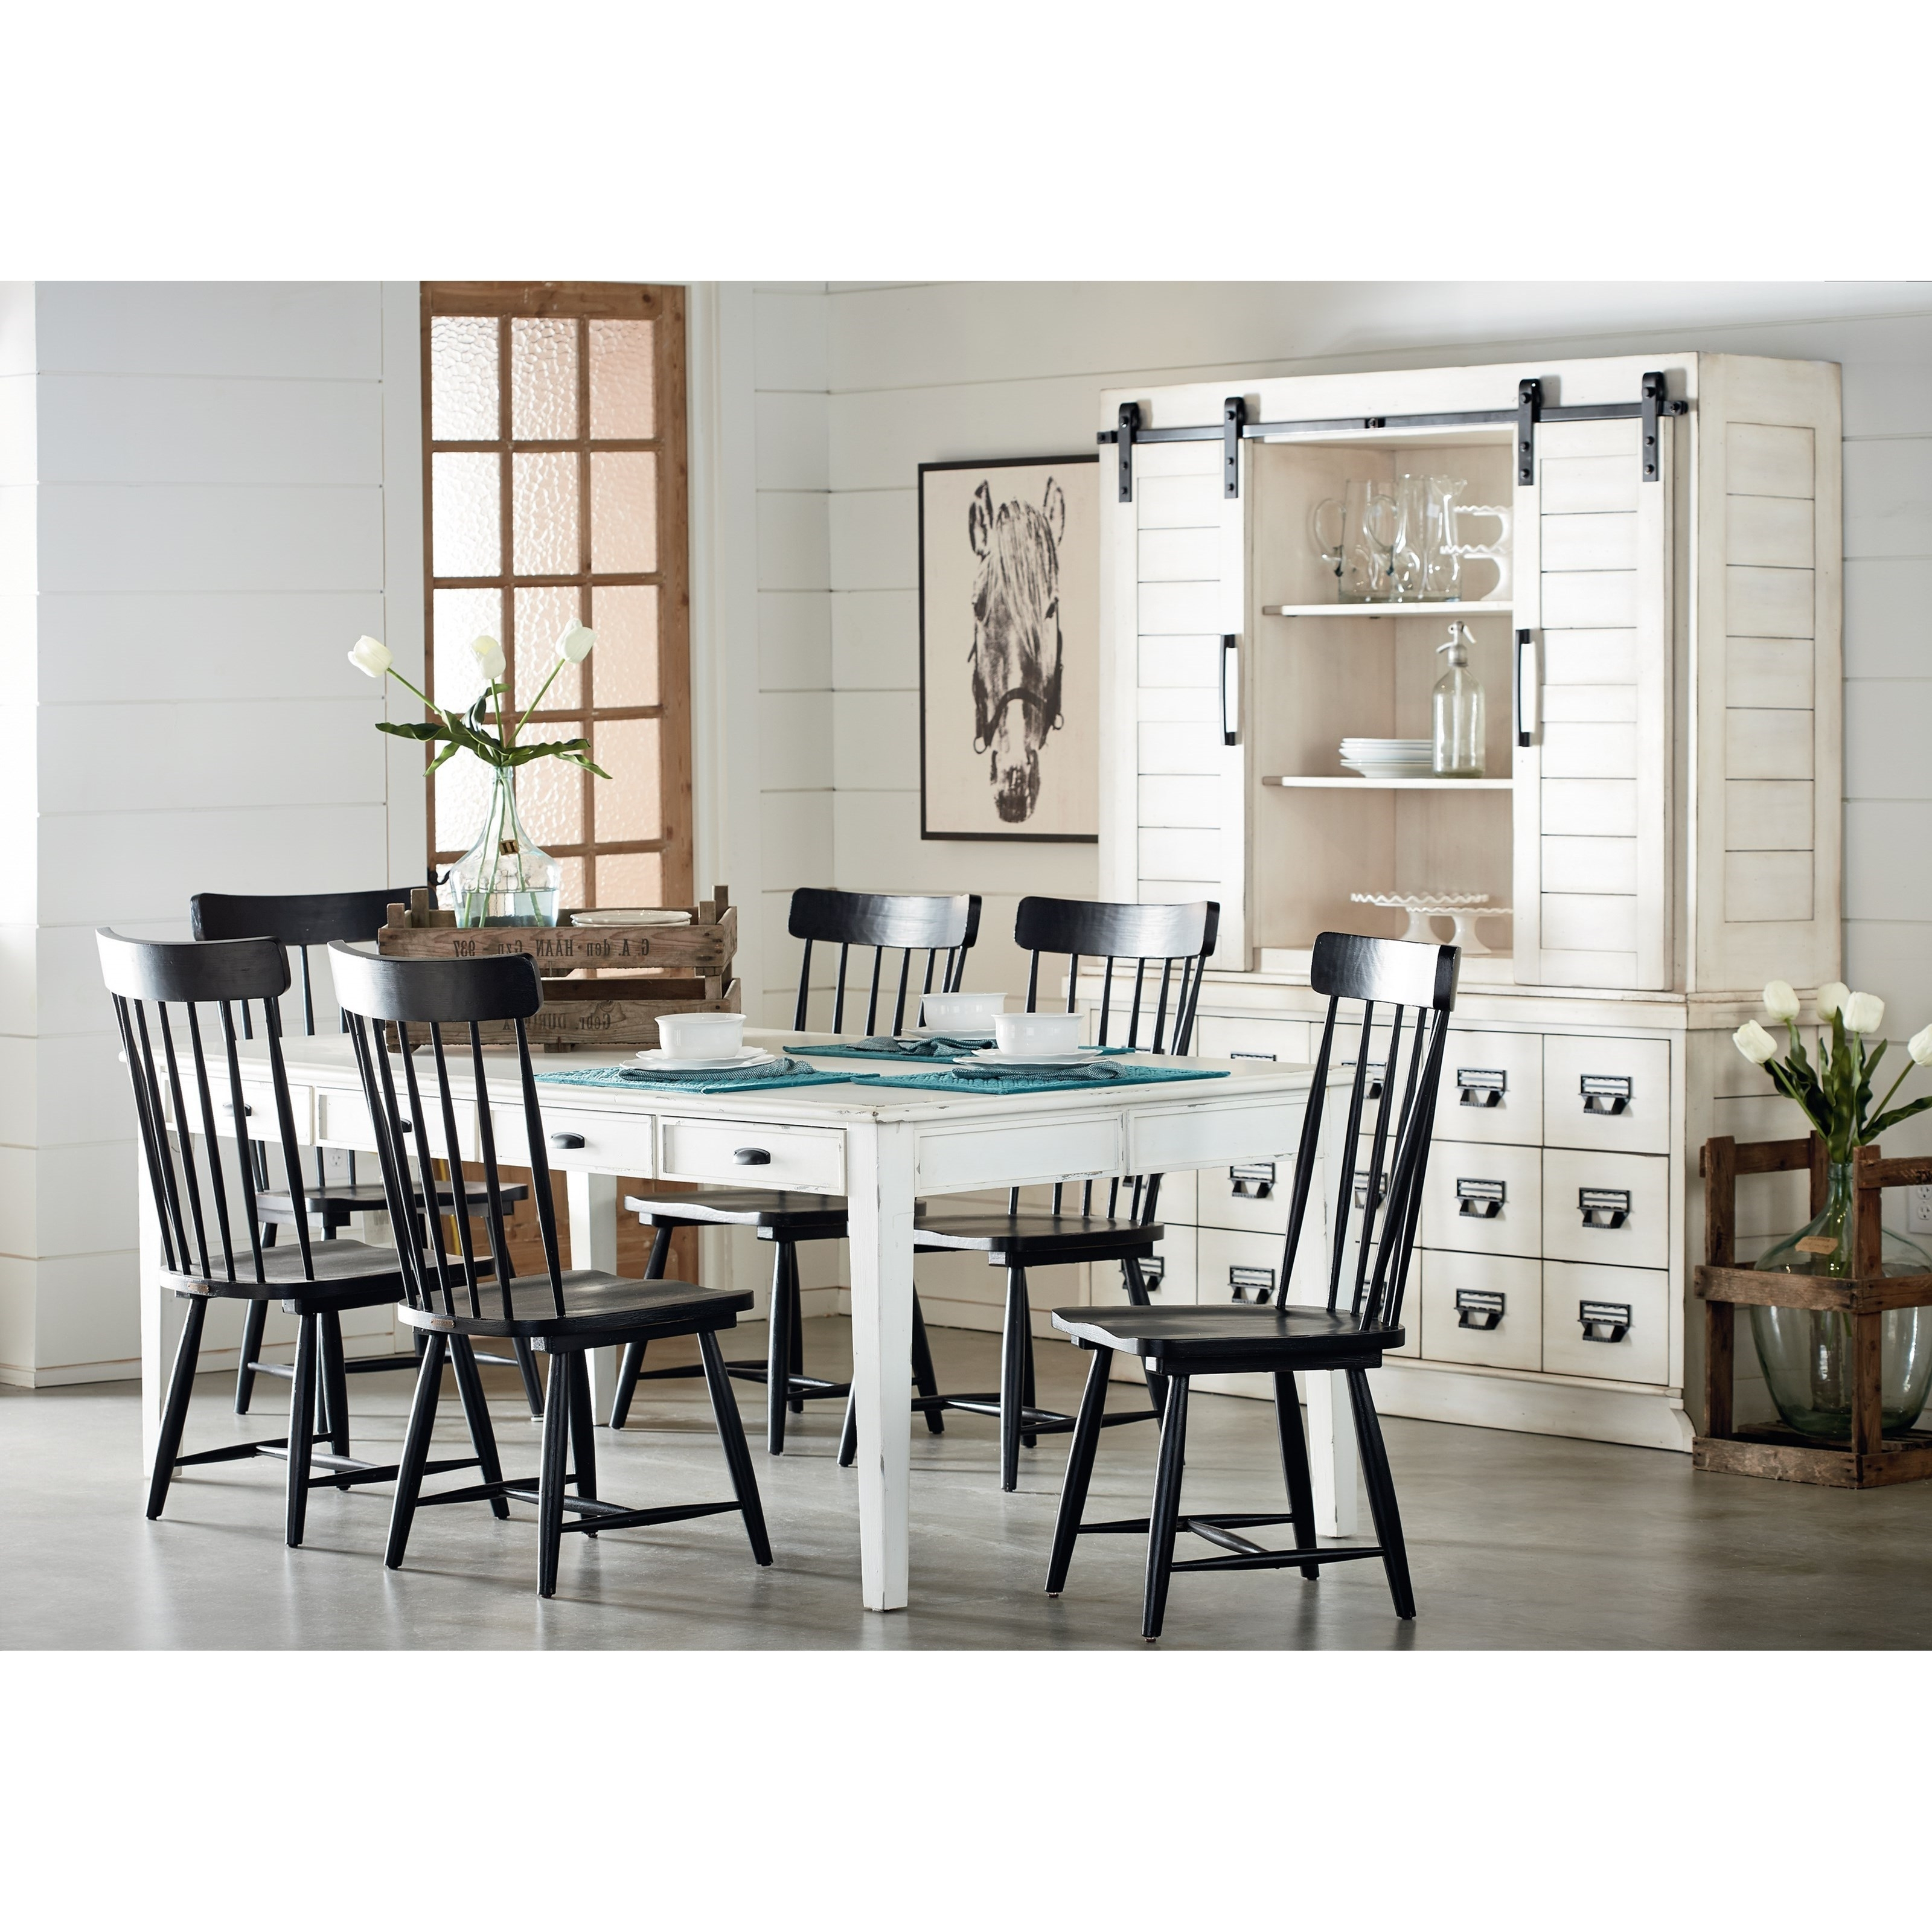 Magnolia Home Array Dining Tables By Joanna Gaines In Well Known What Makes You Feel Most At Home For The Holidays? – Zak's Facts (View 7 of 25)